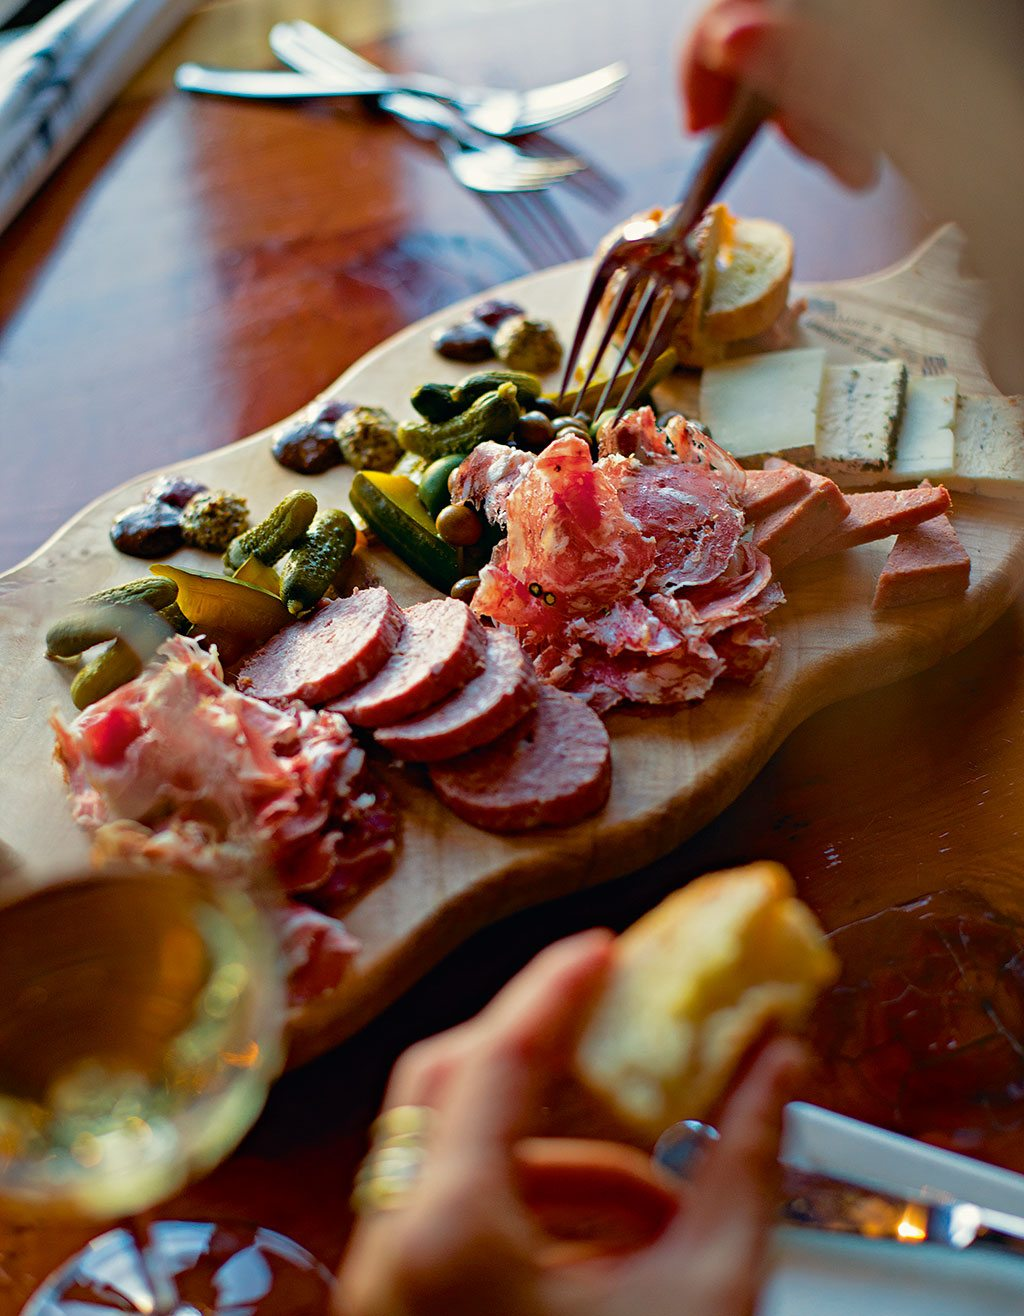 Cold cut platters at Valette, Sonoma